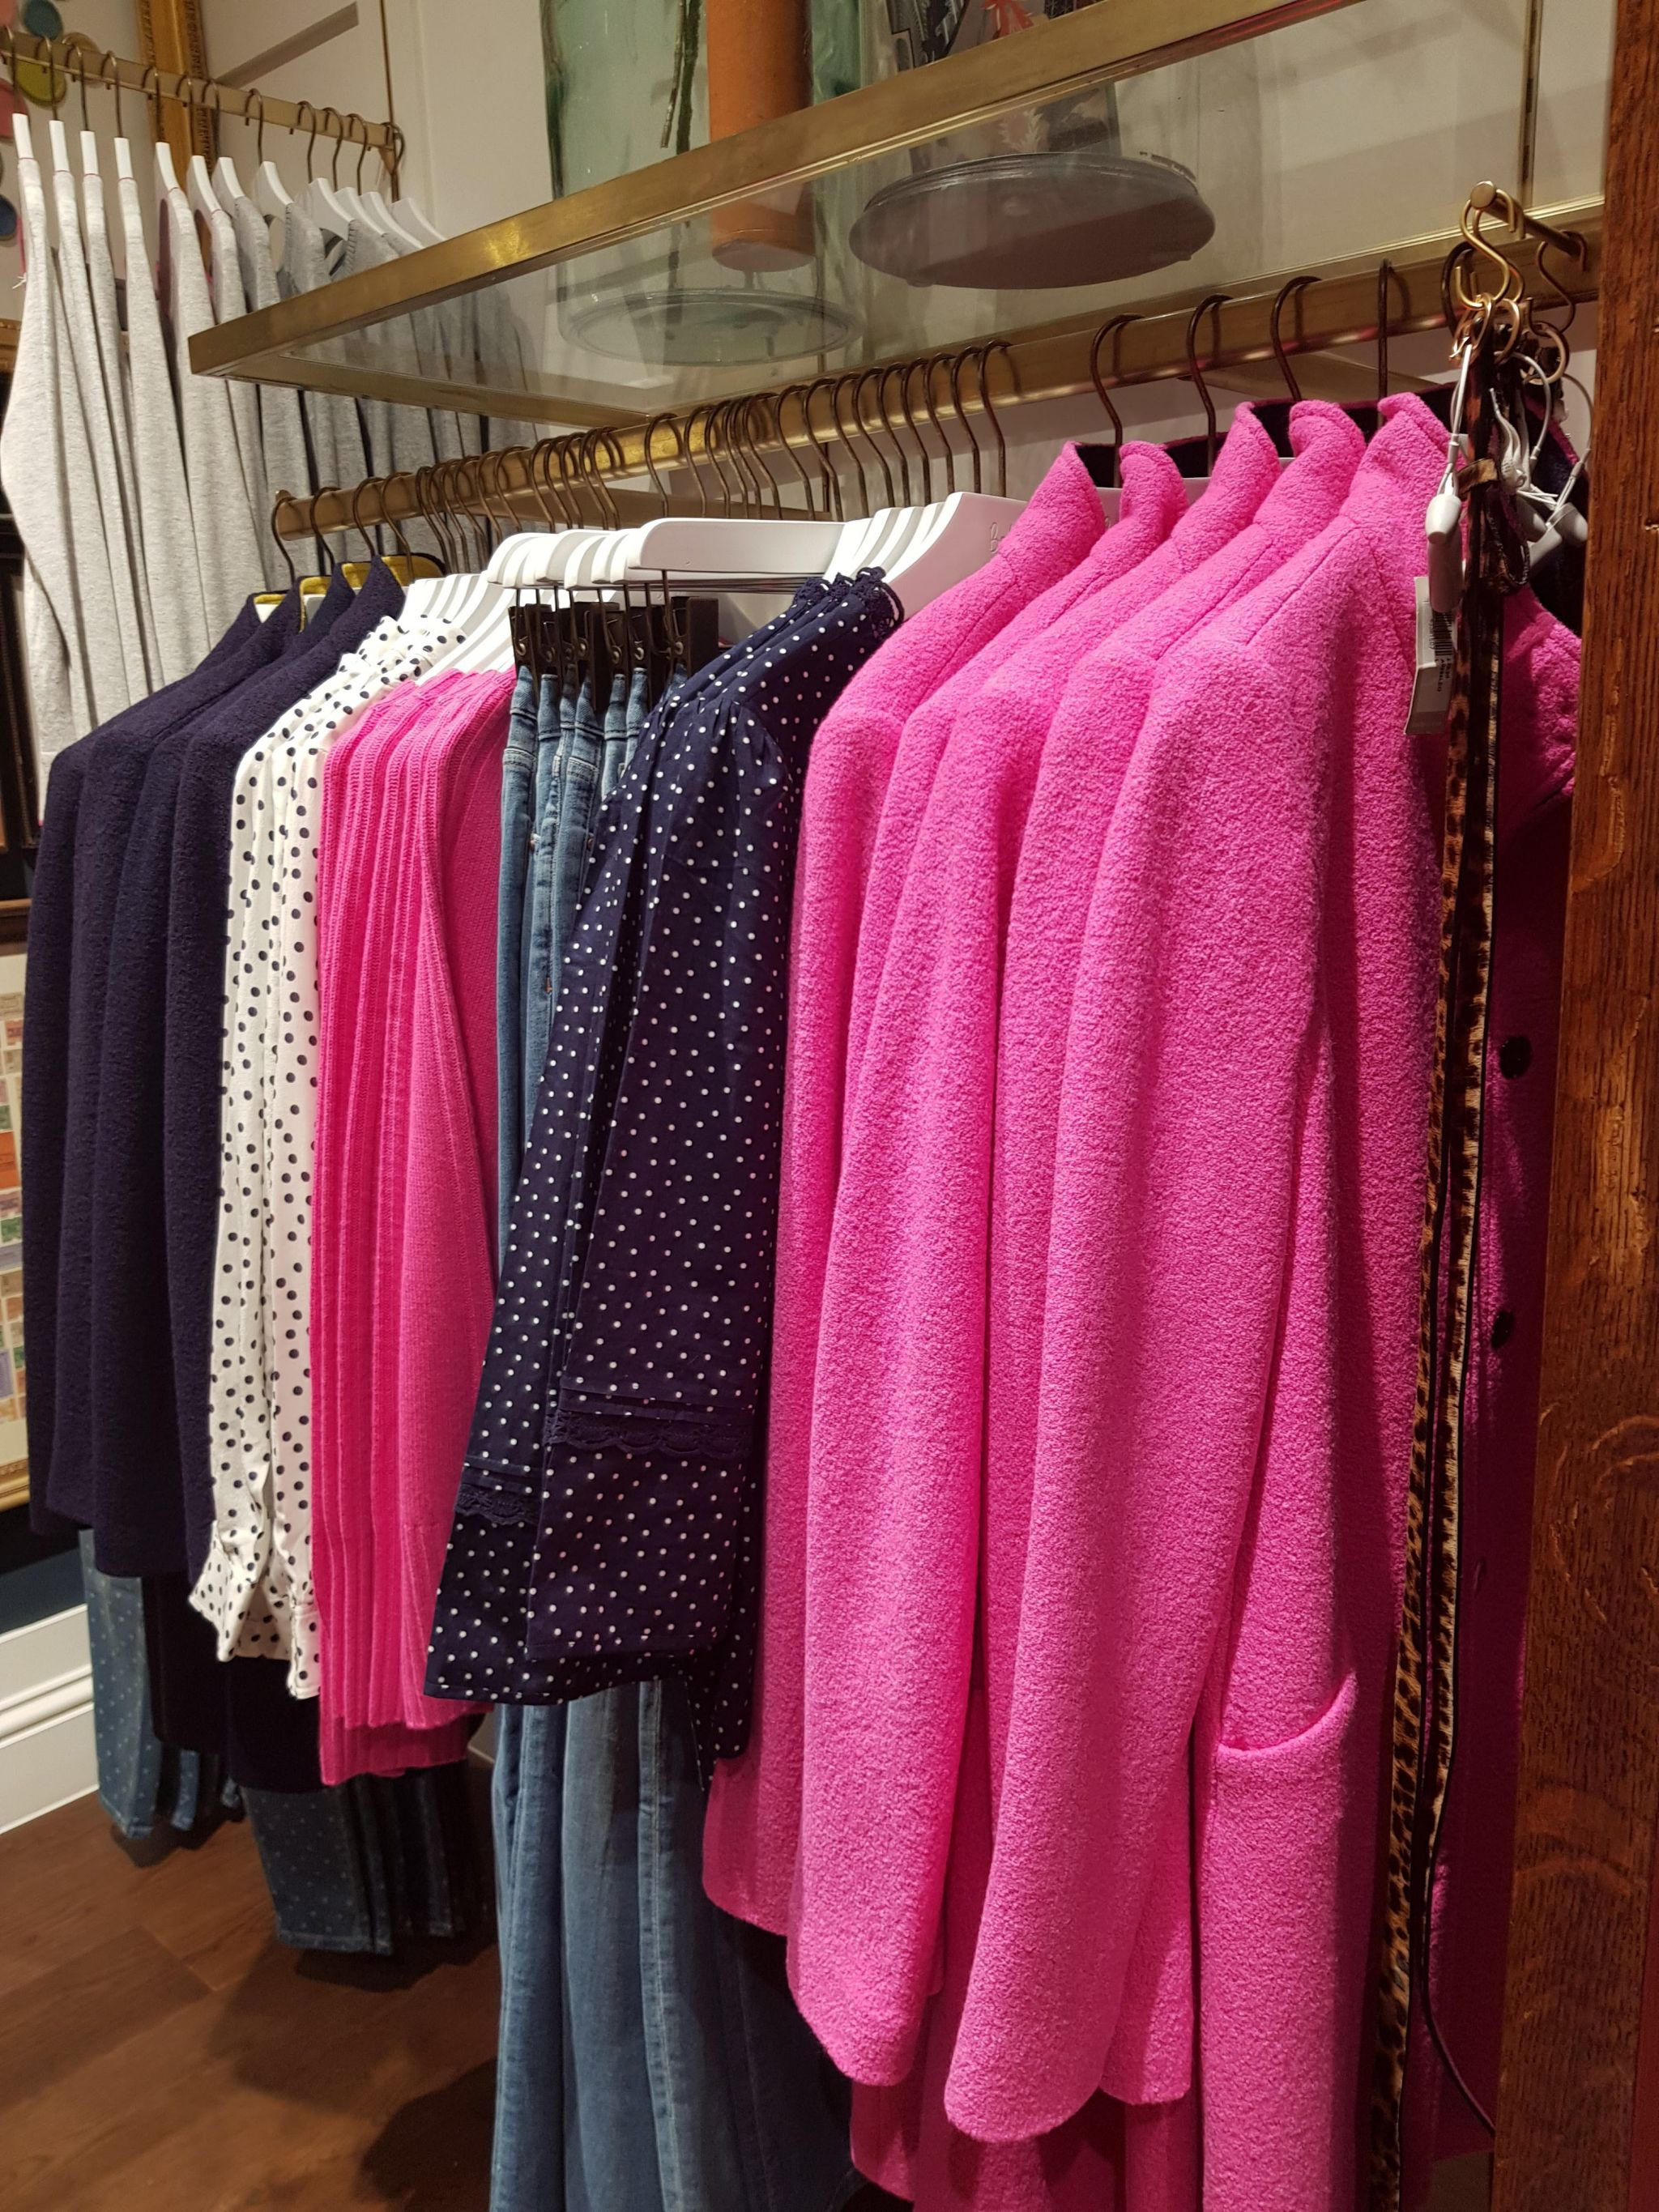 16a49868234 Recently I attended an Autumn Winter styling event at the Boden store in  London s Westfield. We were joined by Boden Stylist Sarah Corbett-Winder  for a talk ...